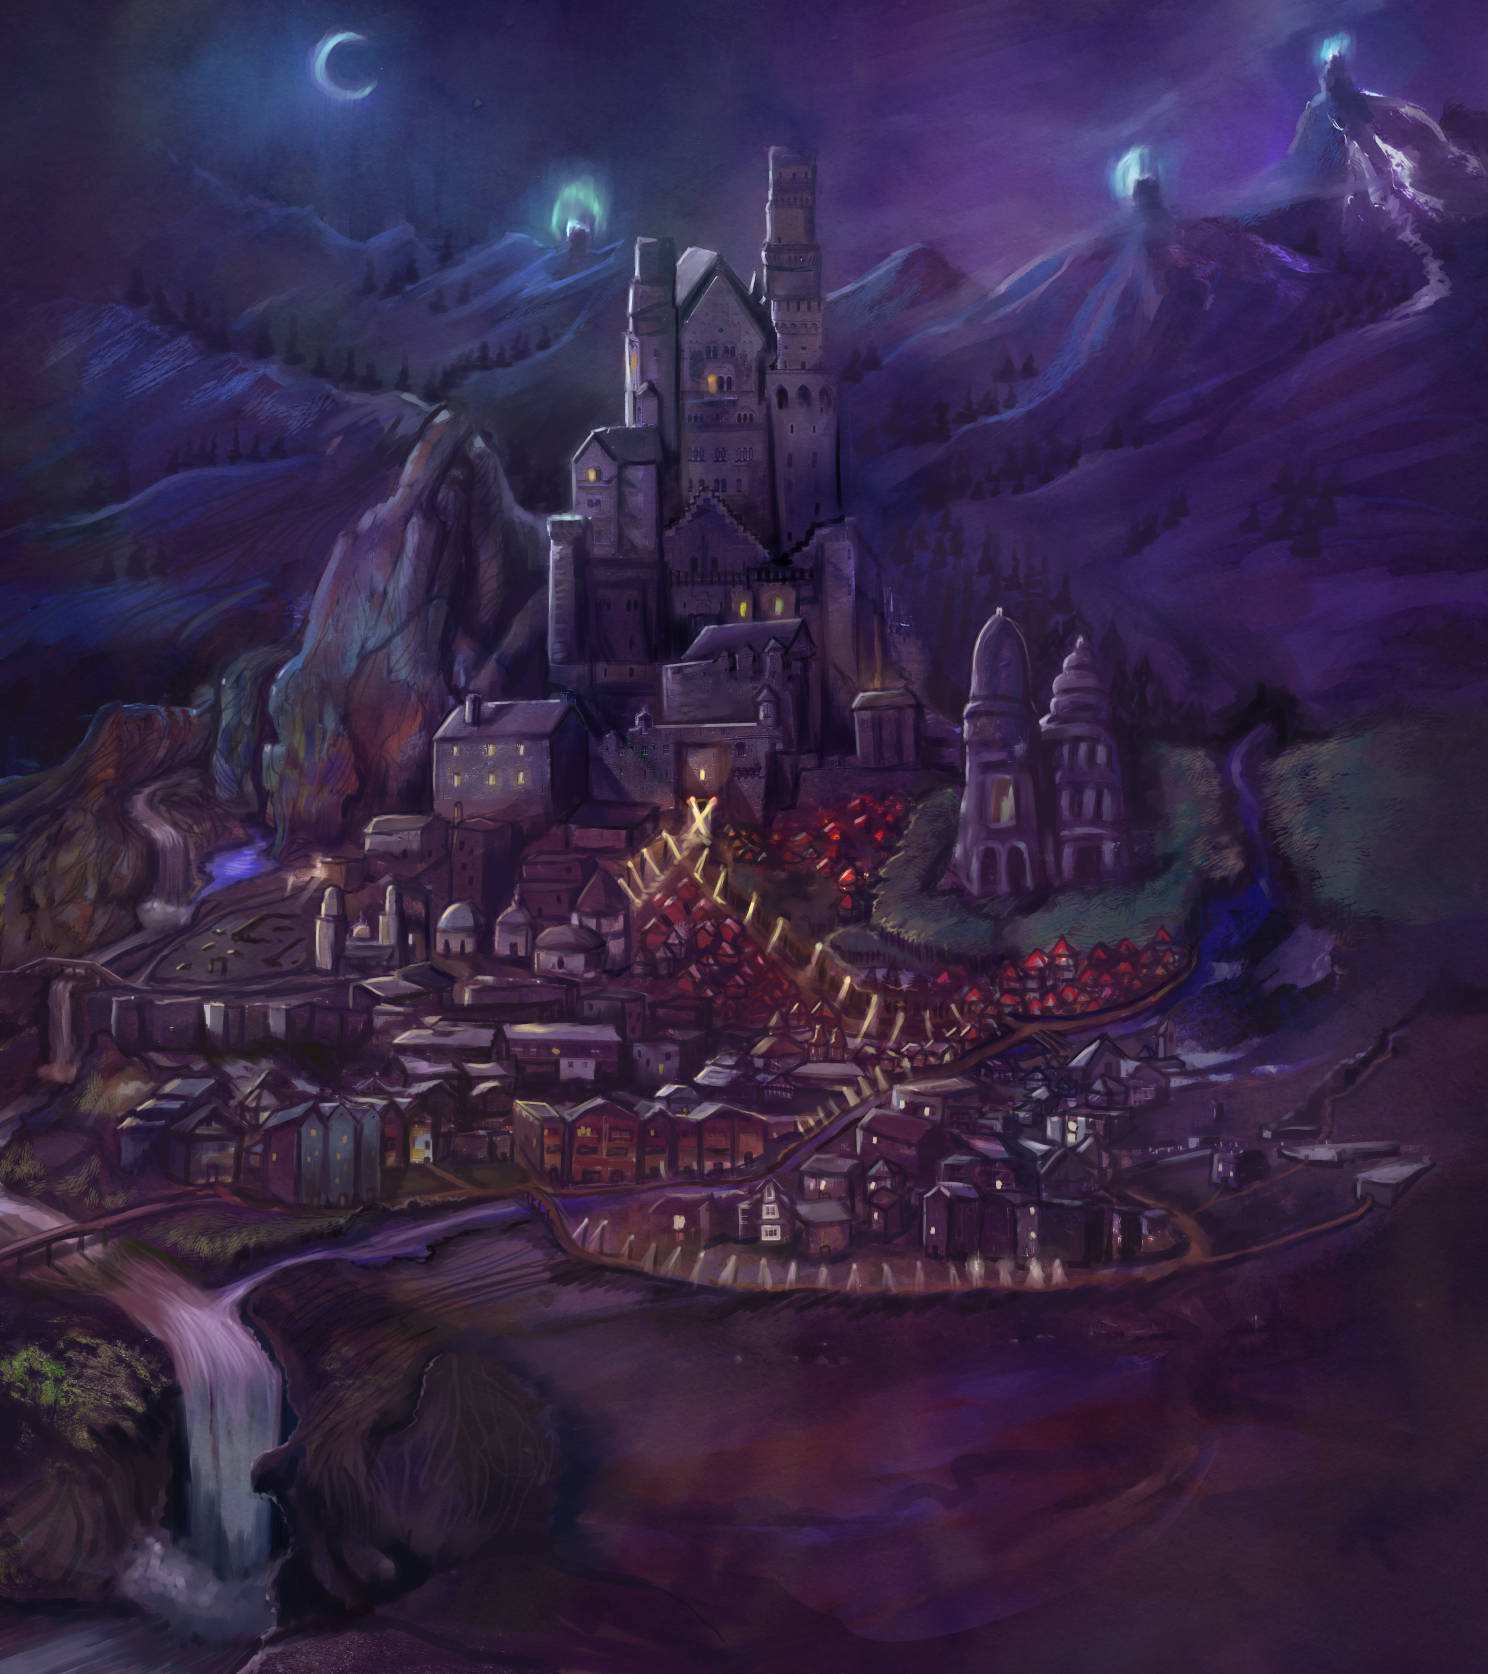 Purple Night Fantasy City in the Mountains watchtower castle waterfall ruins fantasy concept cover book cover art Endoth Tiffany Munro Almaera castle in the mountains beautiful concept art 2018 digital impressionism painted cityscape night moon glow eerie